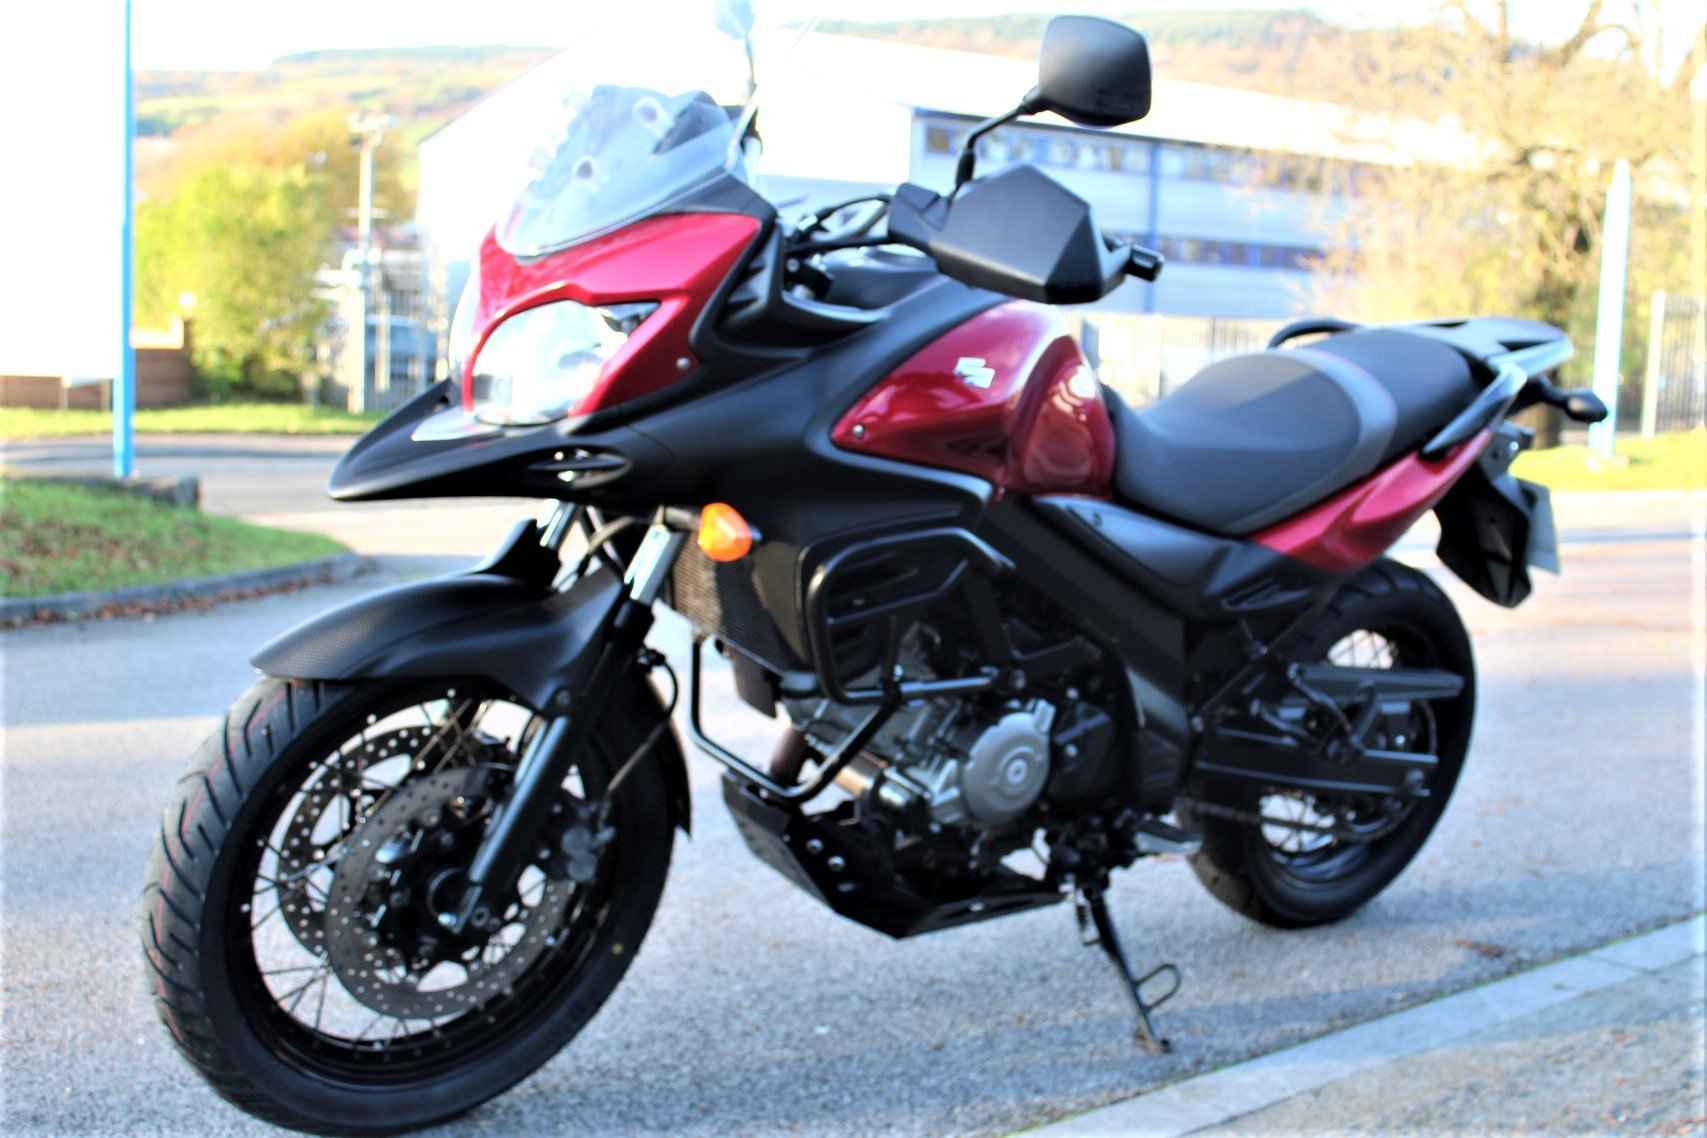 2016 16 Suzuki DL650 AL6 V-Strom Adventure For Sale (picture 3 of 6)